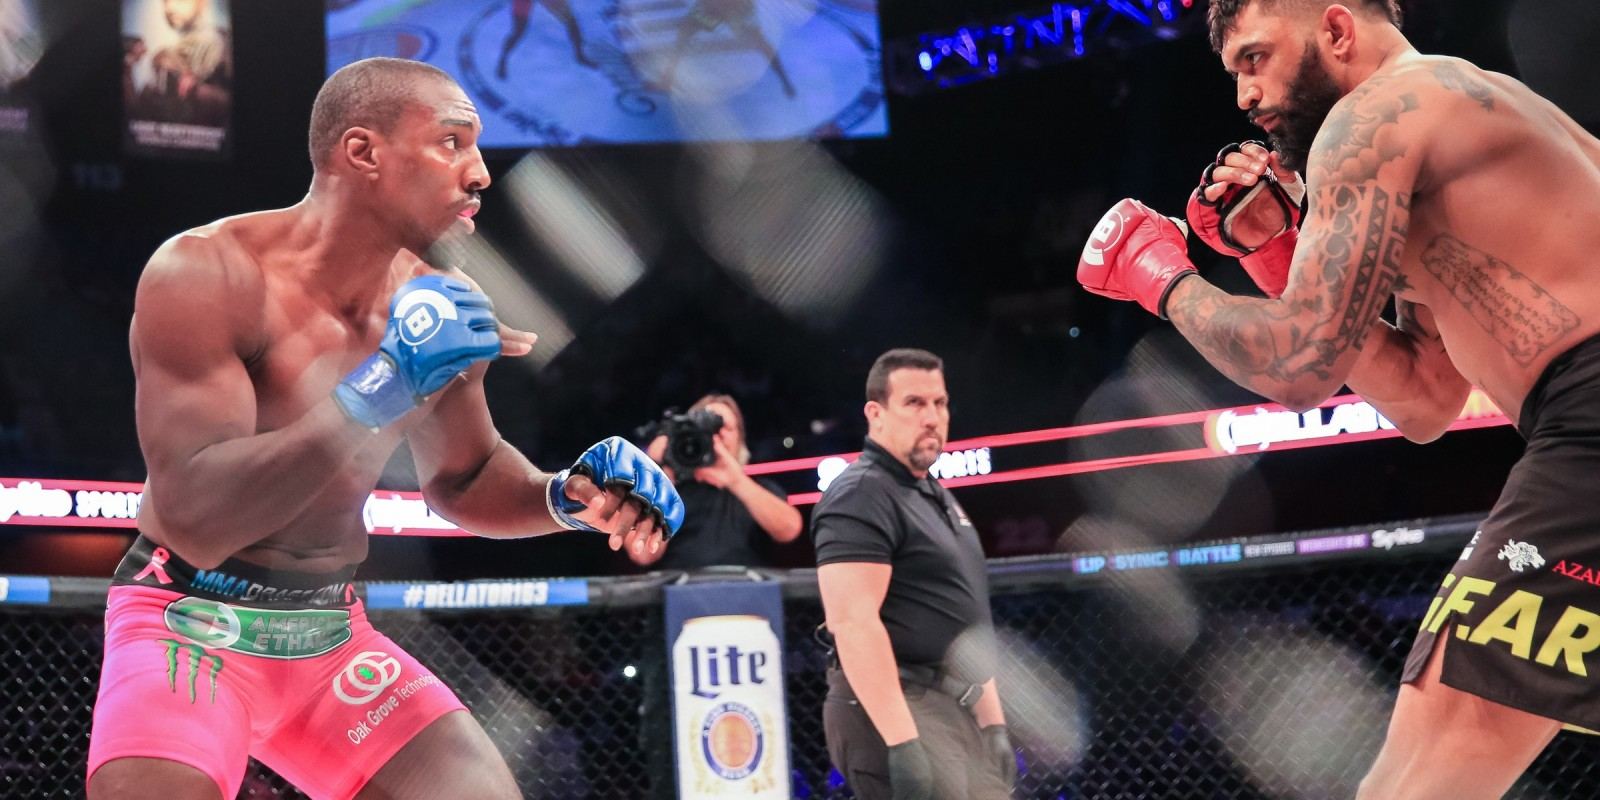 Bellator 163 results: Phil Davis dominates Liam McGeary, takes home light heavyweight title in Uncasville,  Connecticut